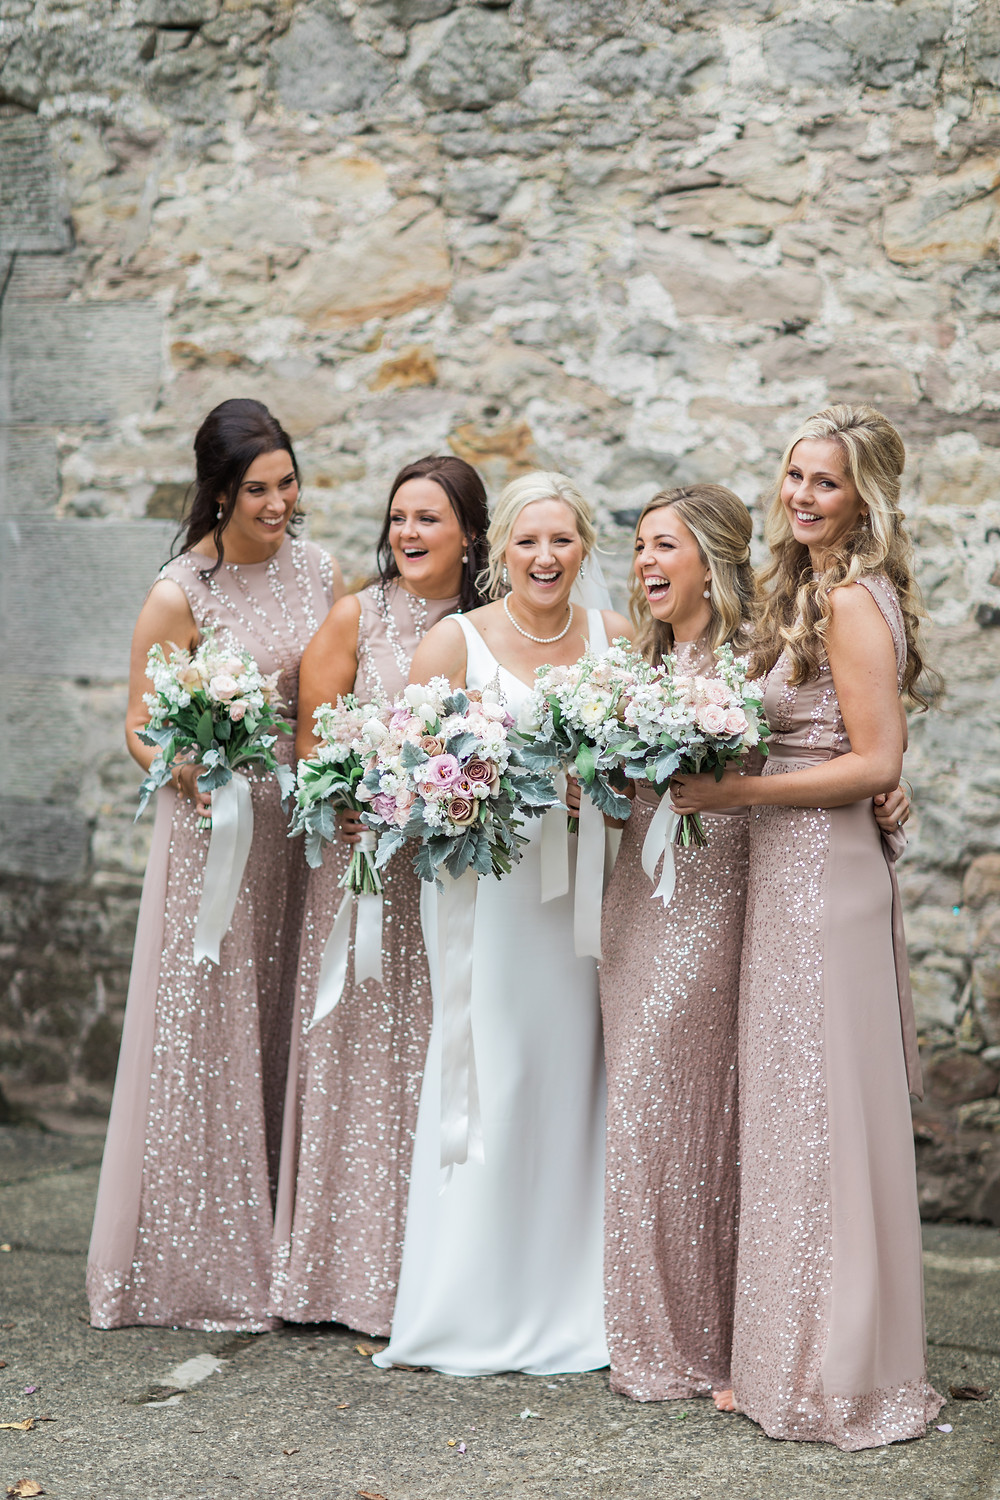 doxford barn wedding bride and bridesmaids flowers